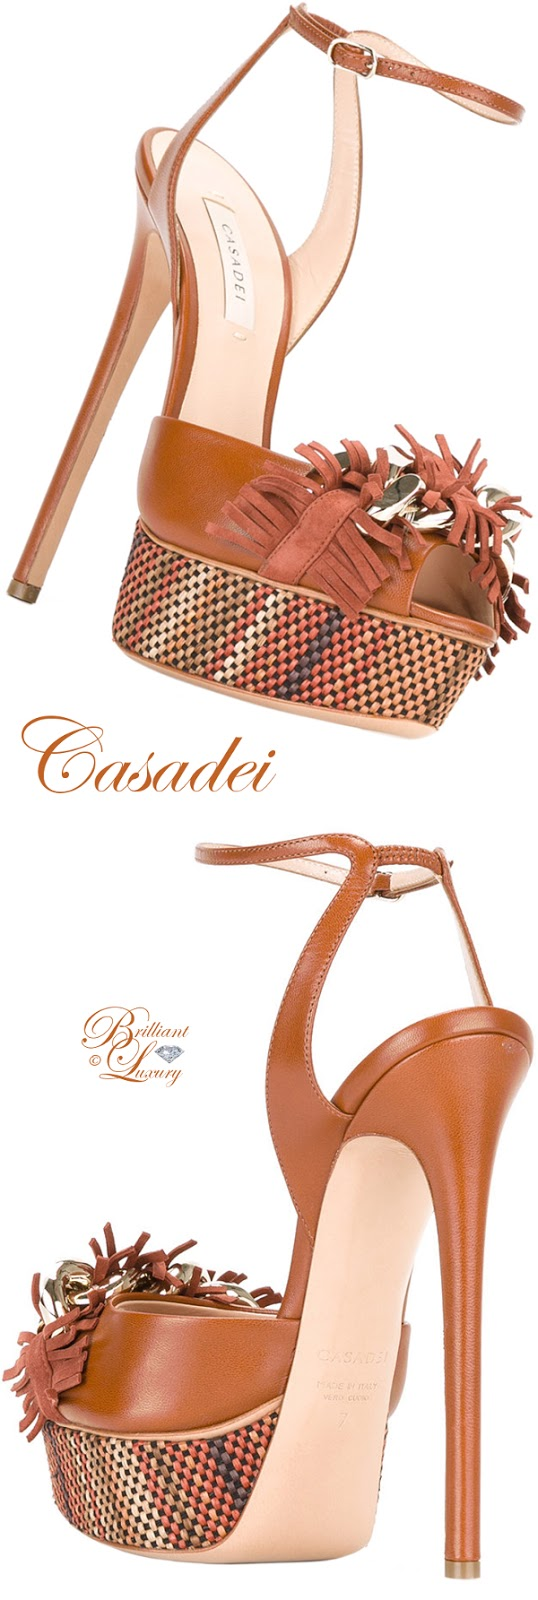 Brilliant Luxury ♦ Casadei Fringed Strap Platform Sandals